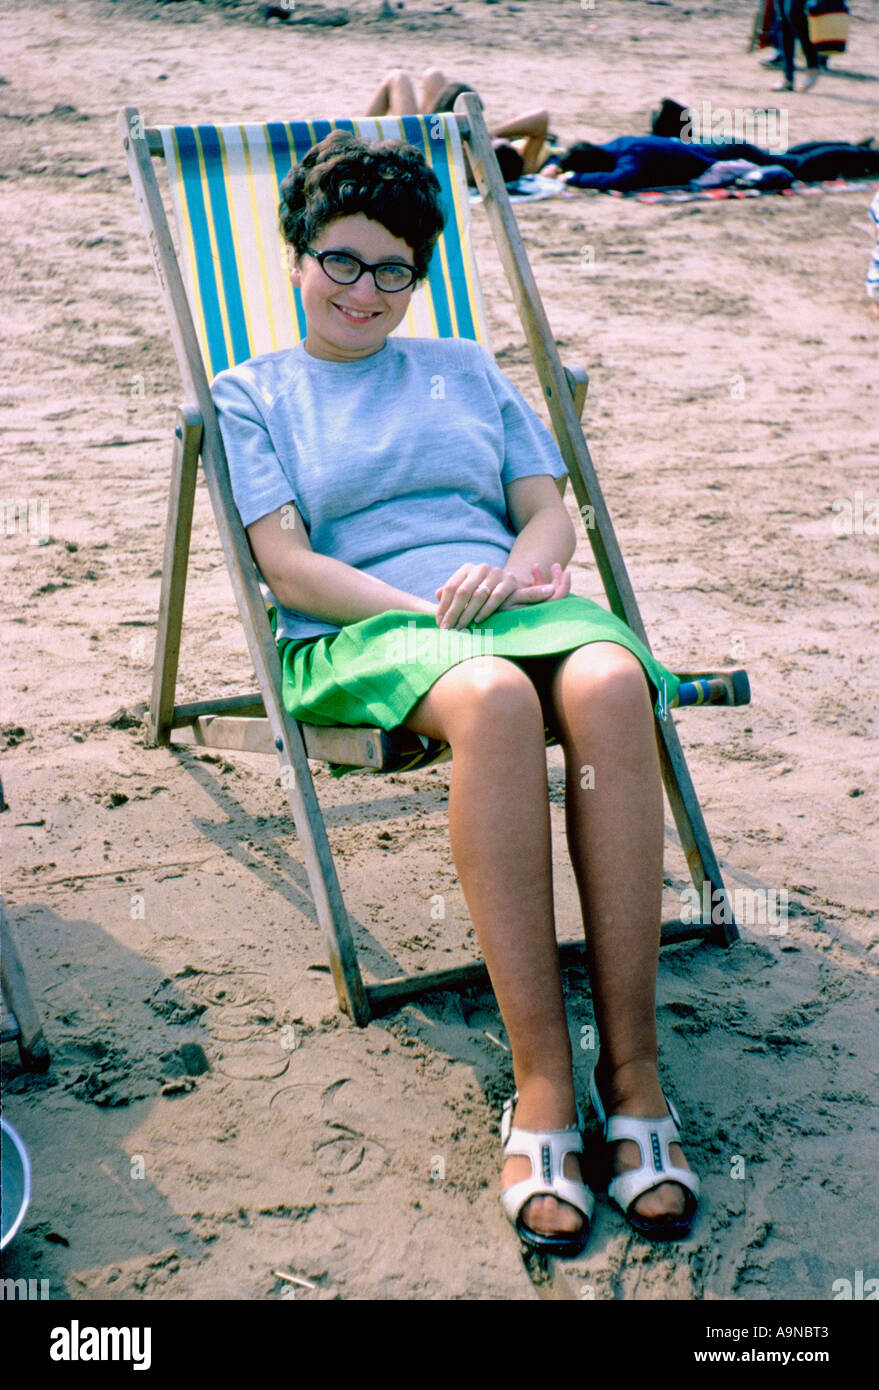 young woman in deckchair at beach in 1960 s - Stock Image